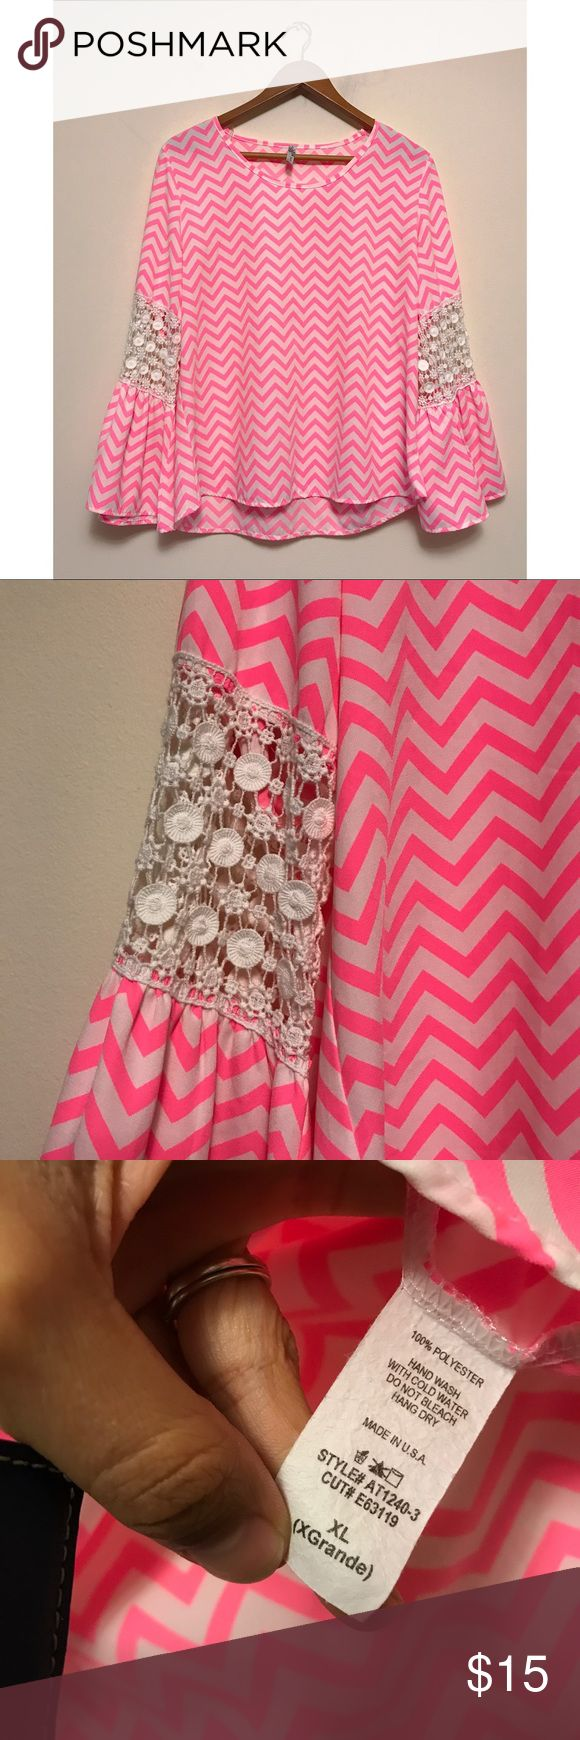 Pink Chevron Top with Crochet Sleeve Detail XL Really adorable long sleeve Chevron top, with crochet lace detail on the sleeves, and a bell sleeve finish. XL, excellent condition, worn once Yahada Tops